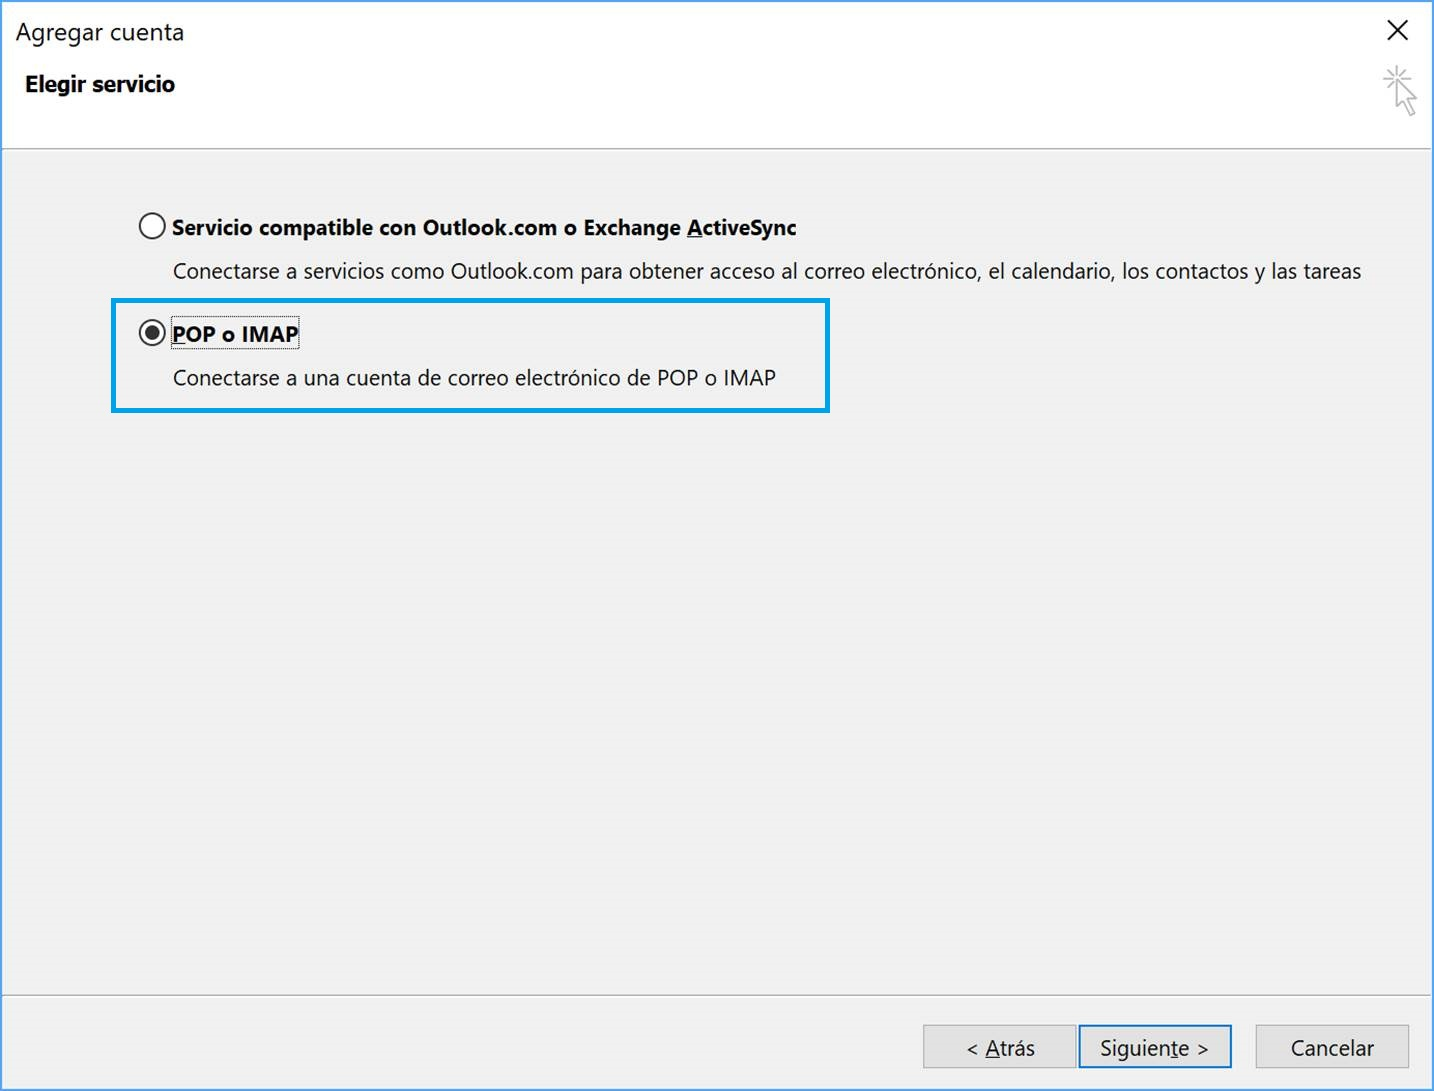 Configuración POP o IMAP Outlook 2016